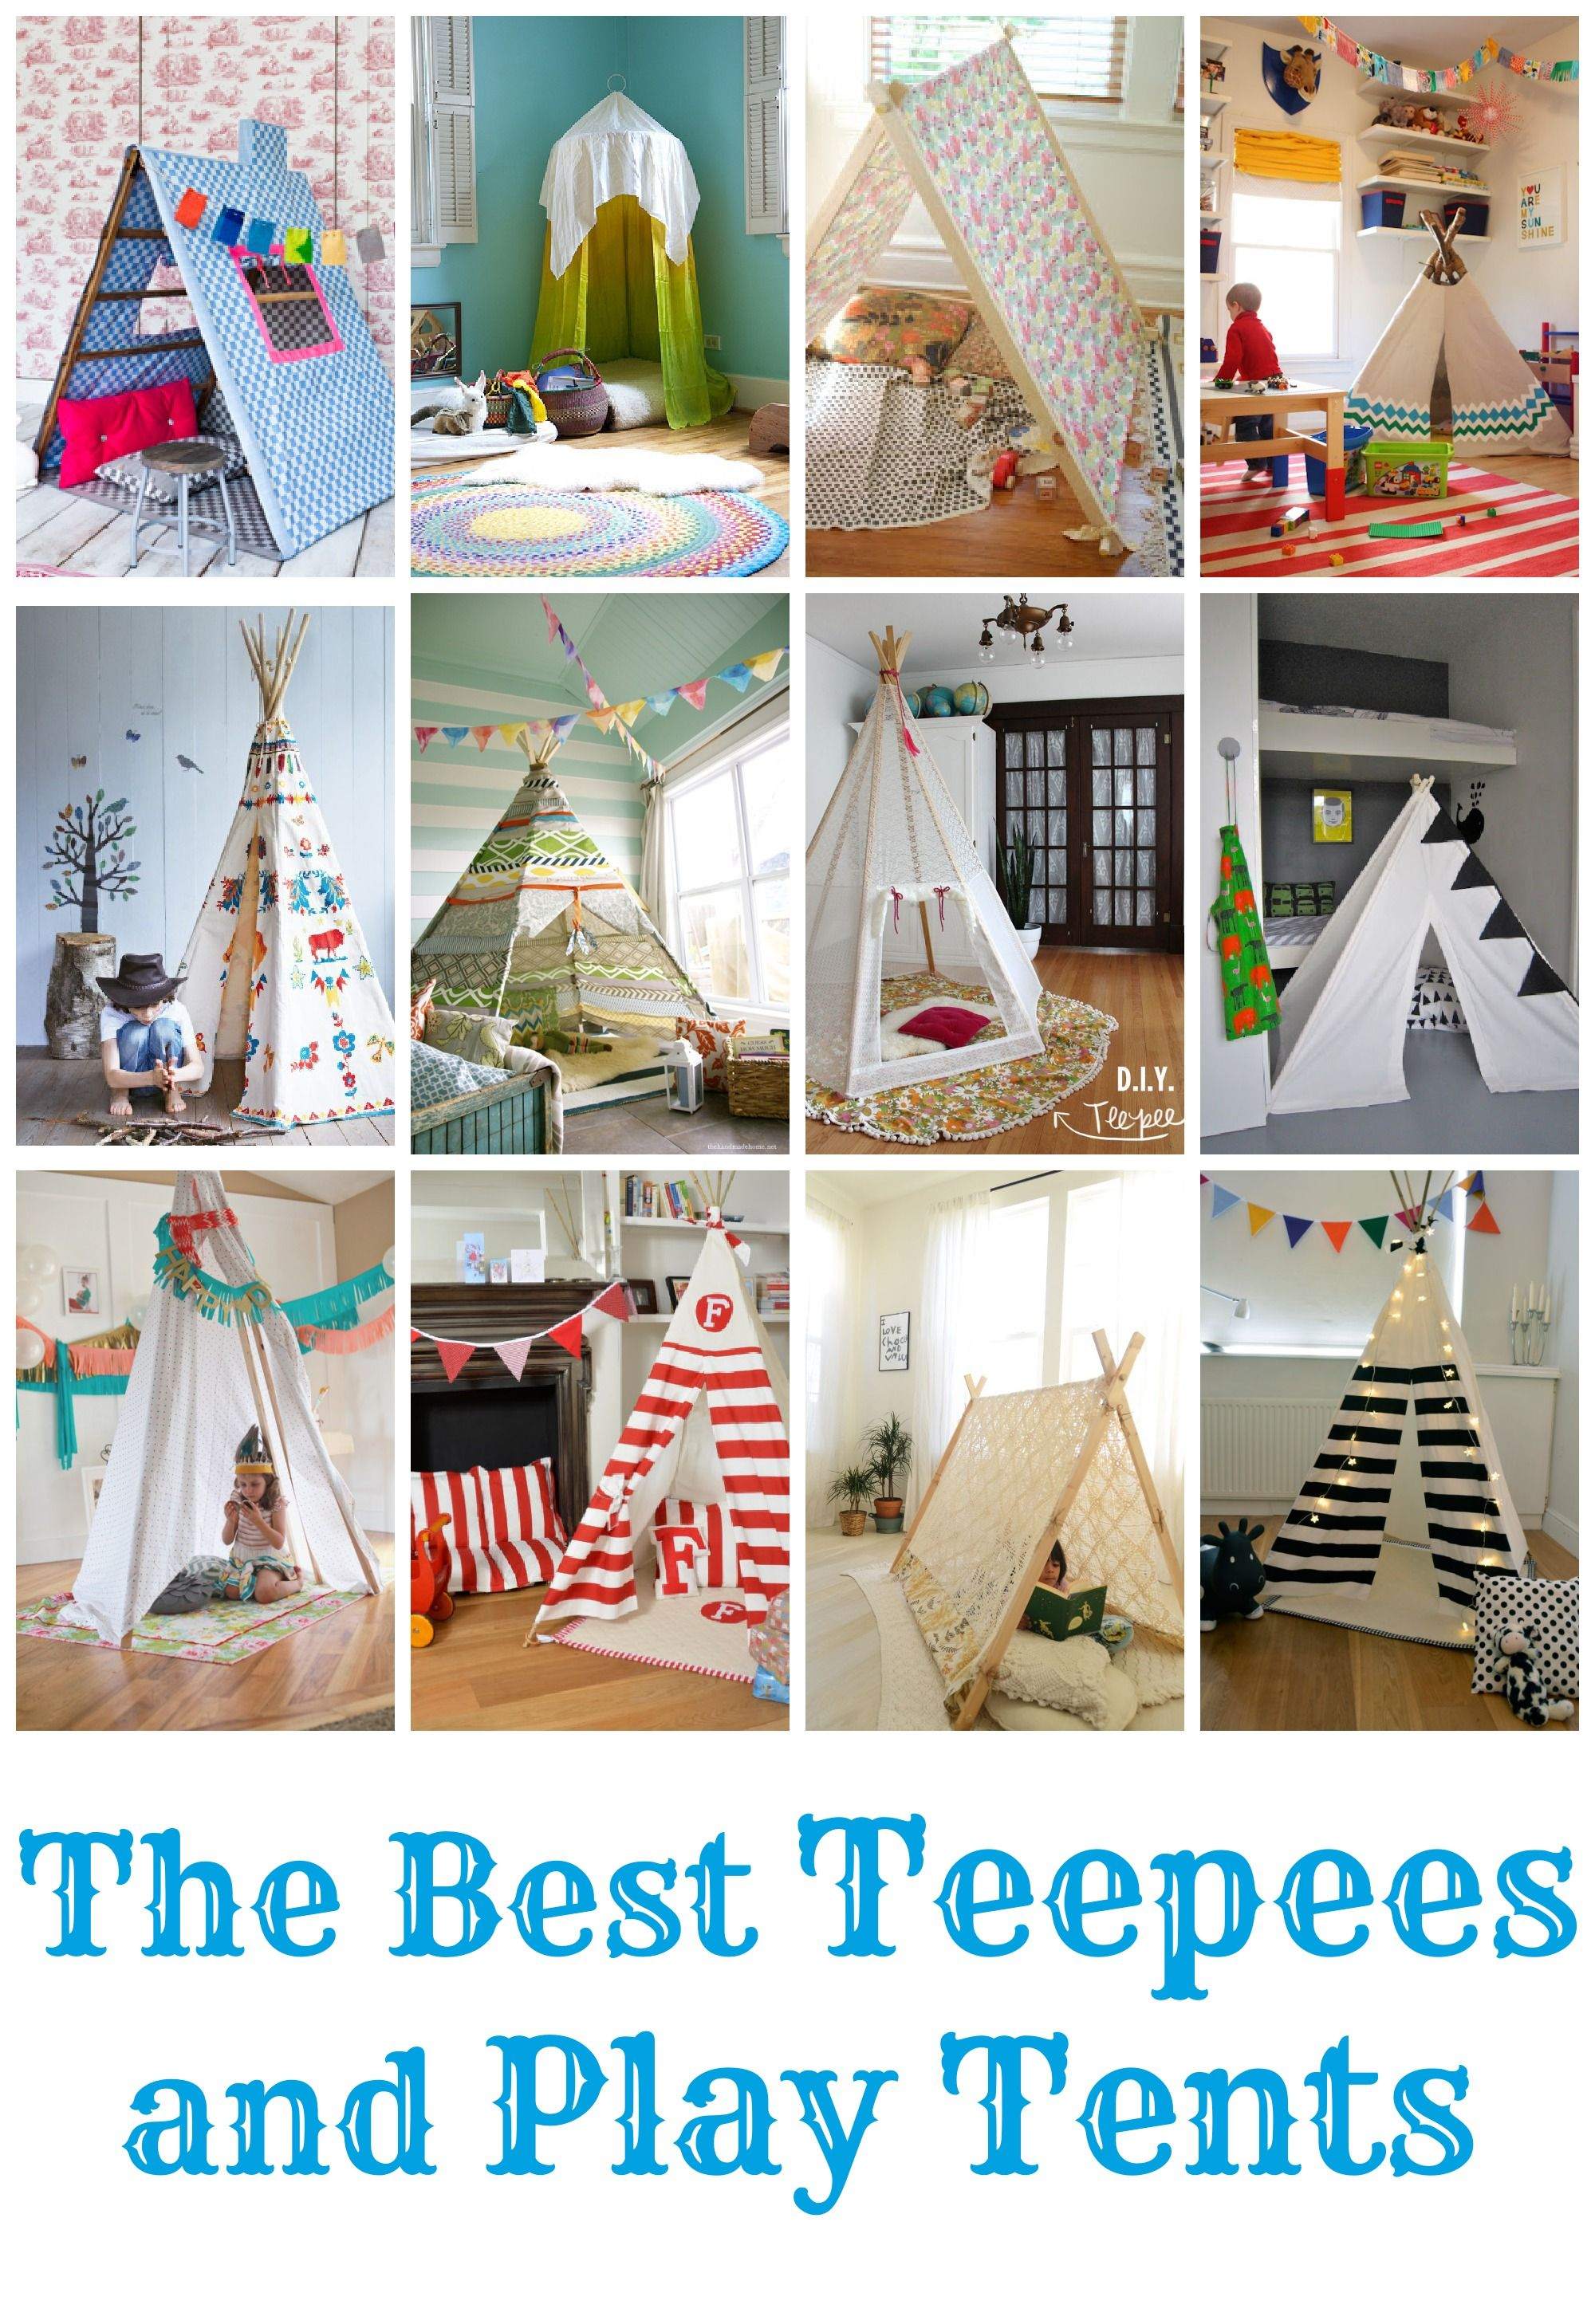 The Best Teepees and Play Tents | Tents, Plays and Playrooms